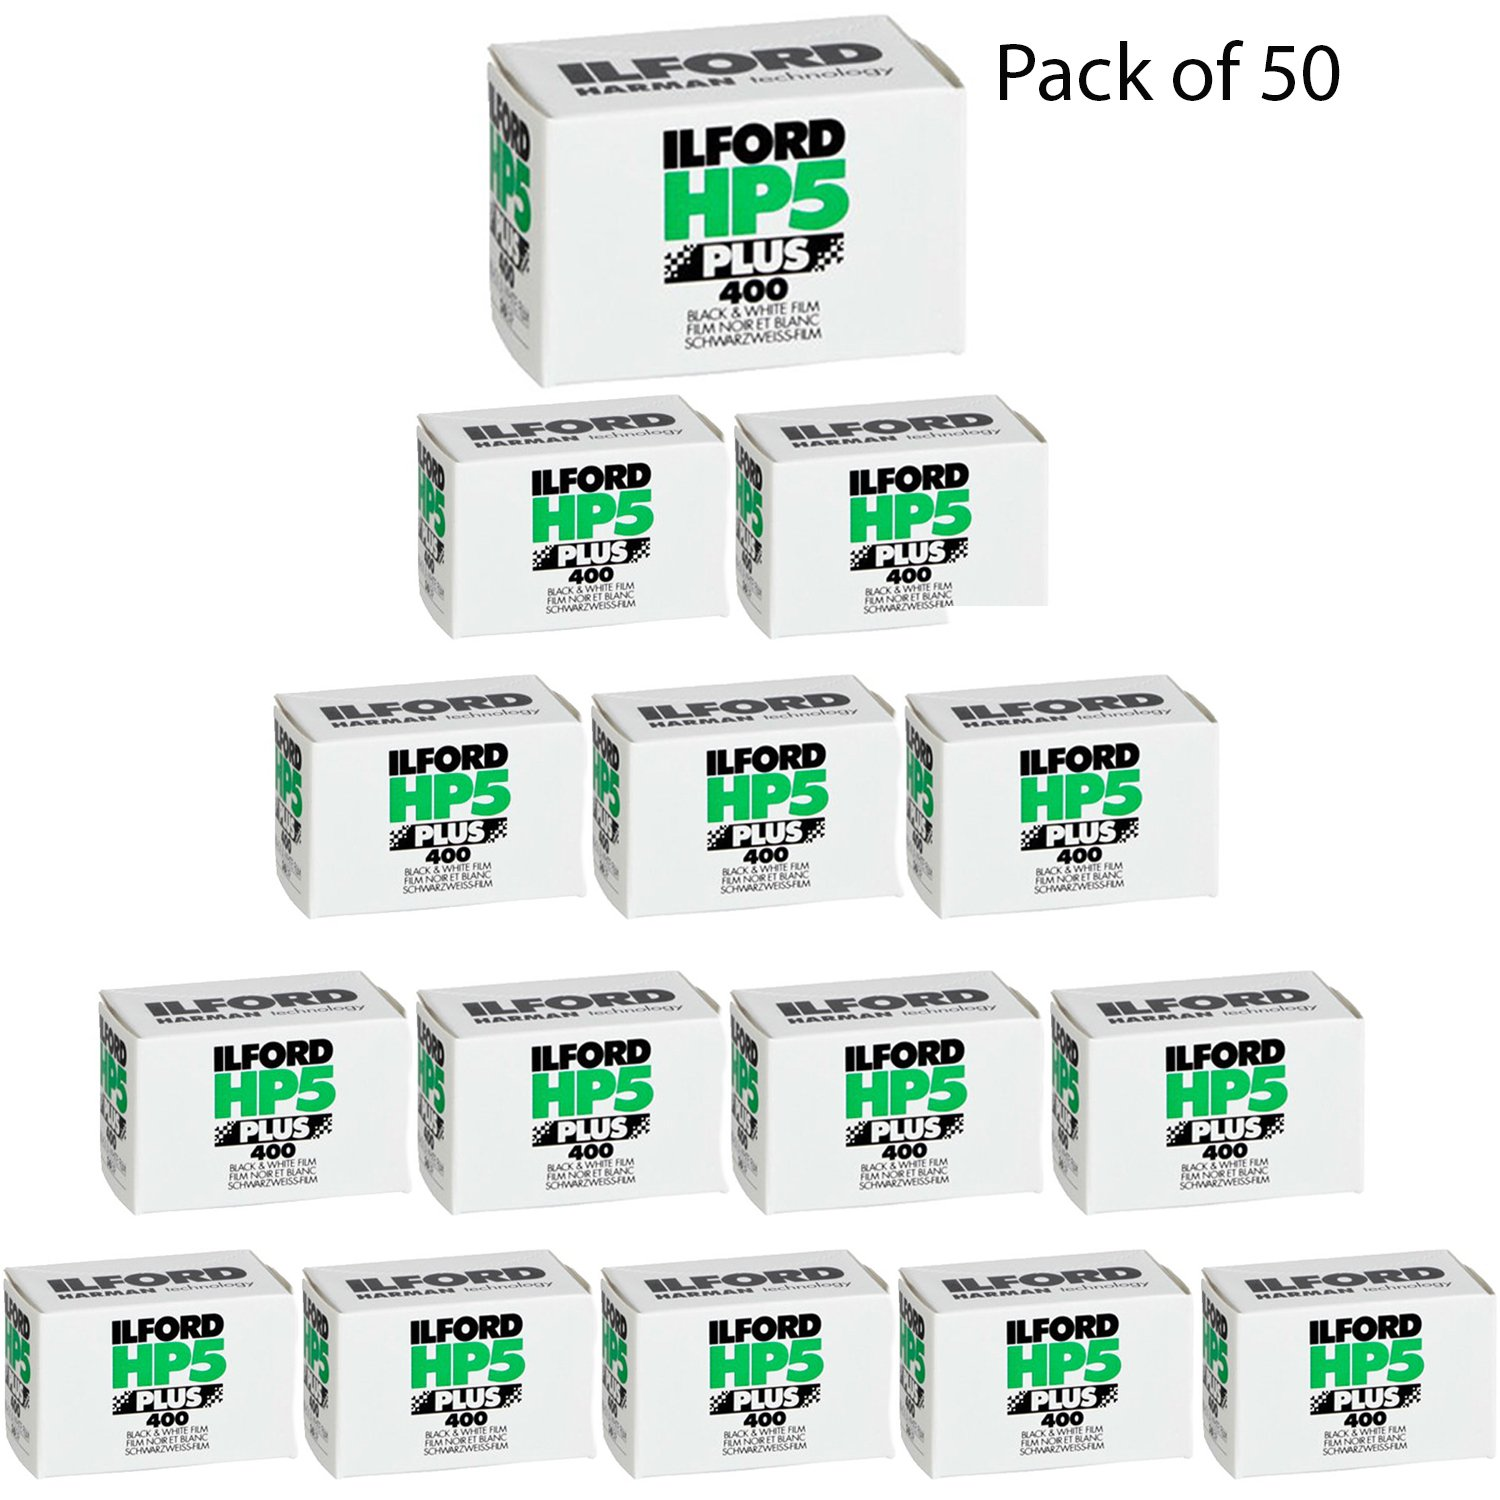 Ilford HP5 Plus Black and White Negative Film (35mm Roll Film, 36 Exposures, 50 Pack) by Ilford